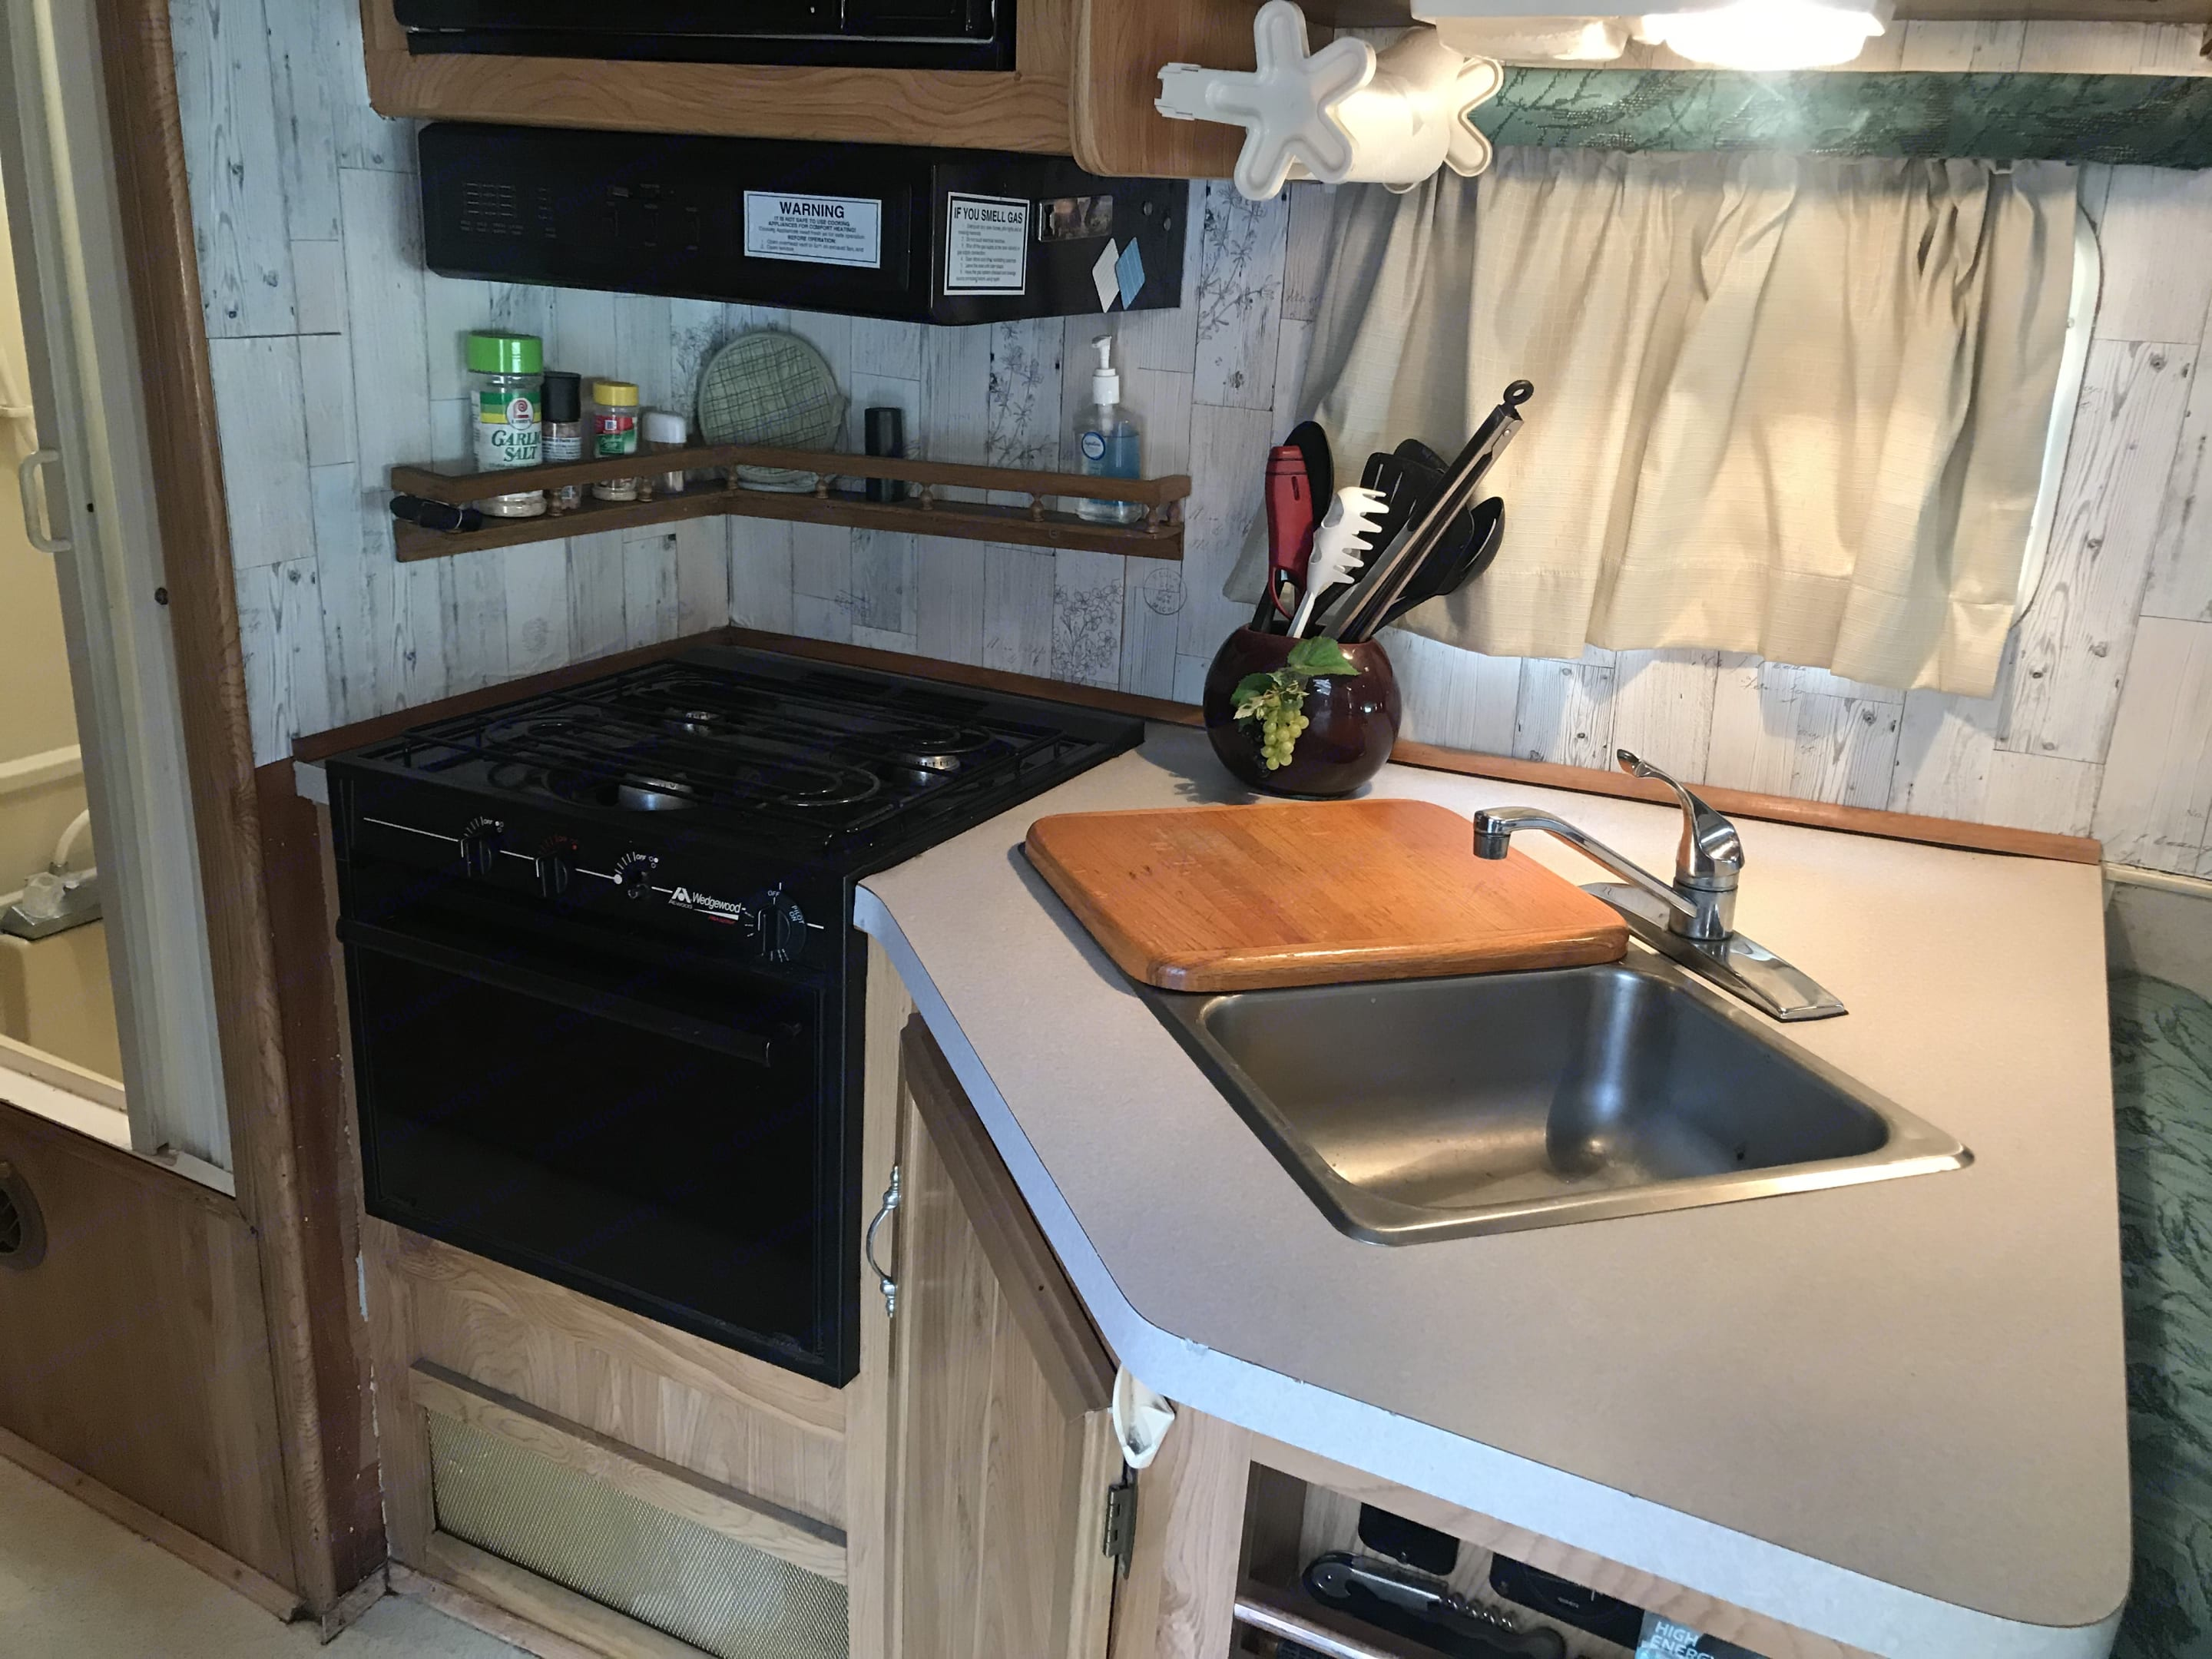 Here's the kitchen showing double sinks, cutting board, 3-burner stove, oven, vent, window, and microwave (above the vent).. Ford Fourwinds 1994